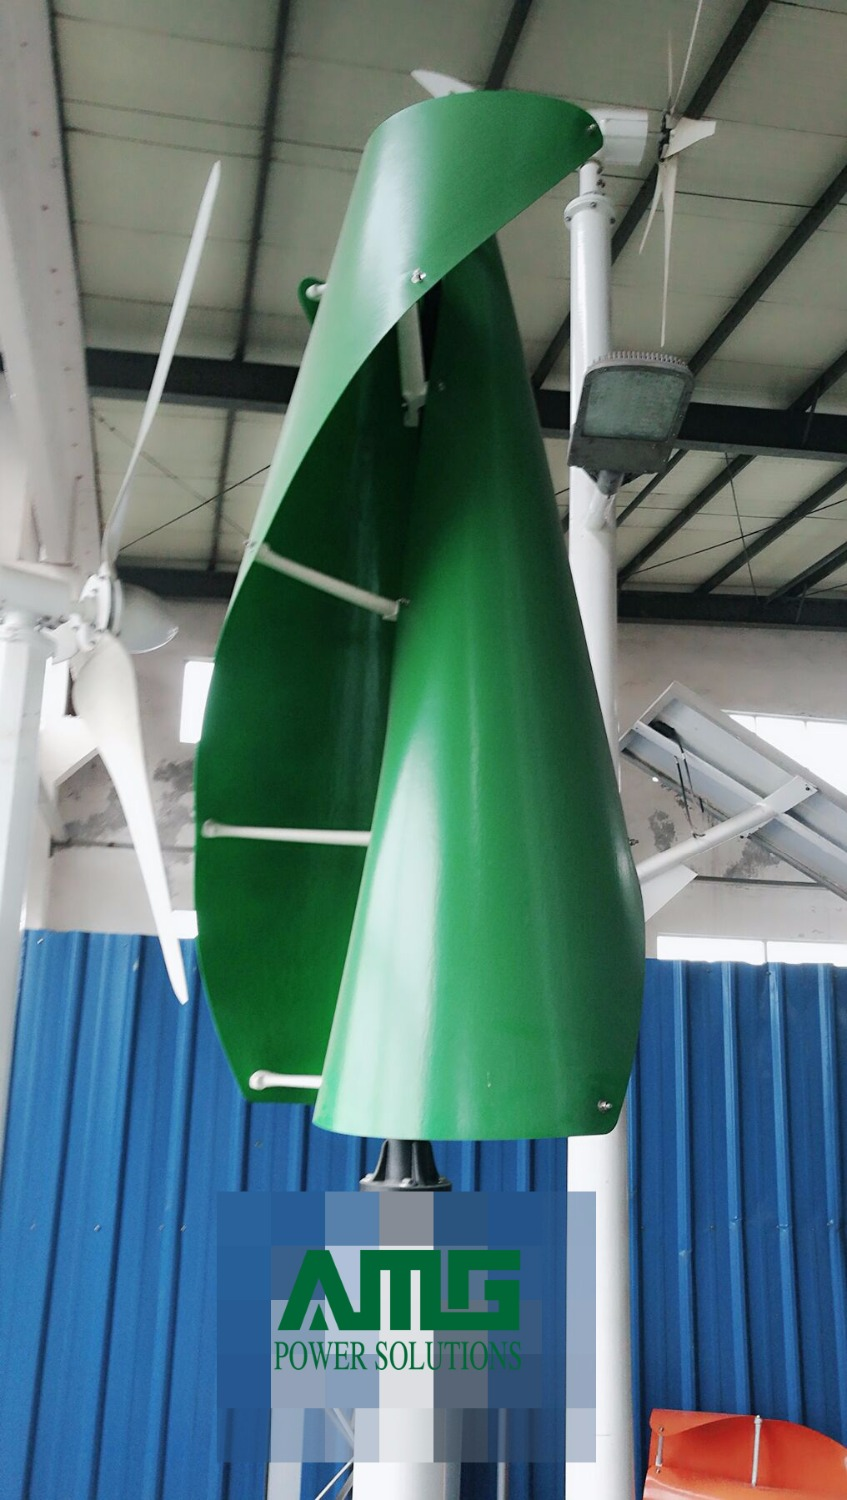 400W500W600W 12V/24V Green Color Wind Turbine Generator VAWT Vertical Axis Residential use energy with Charger Controller